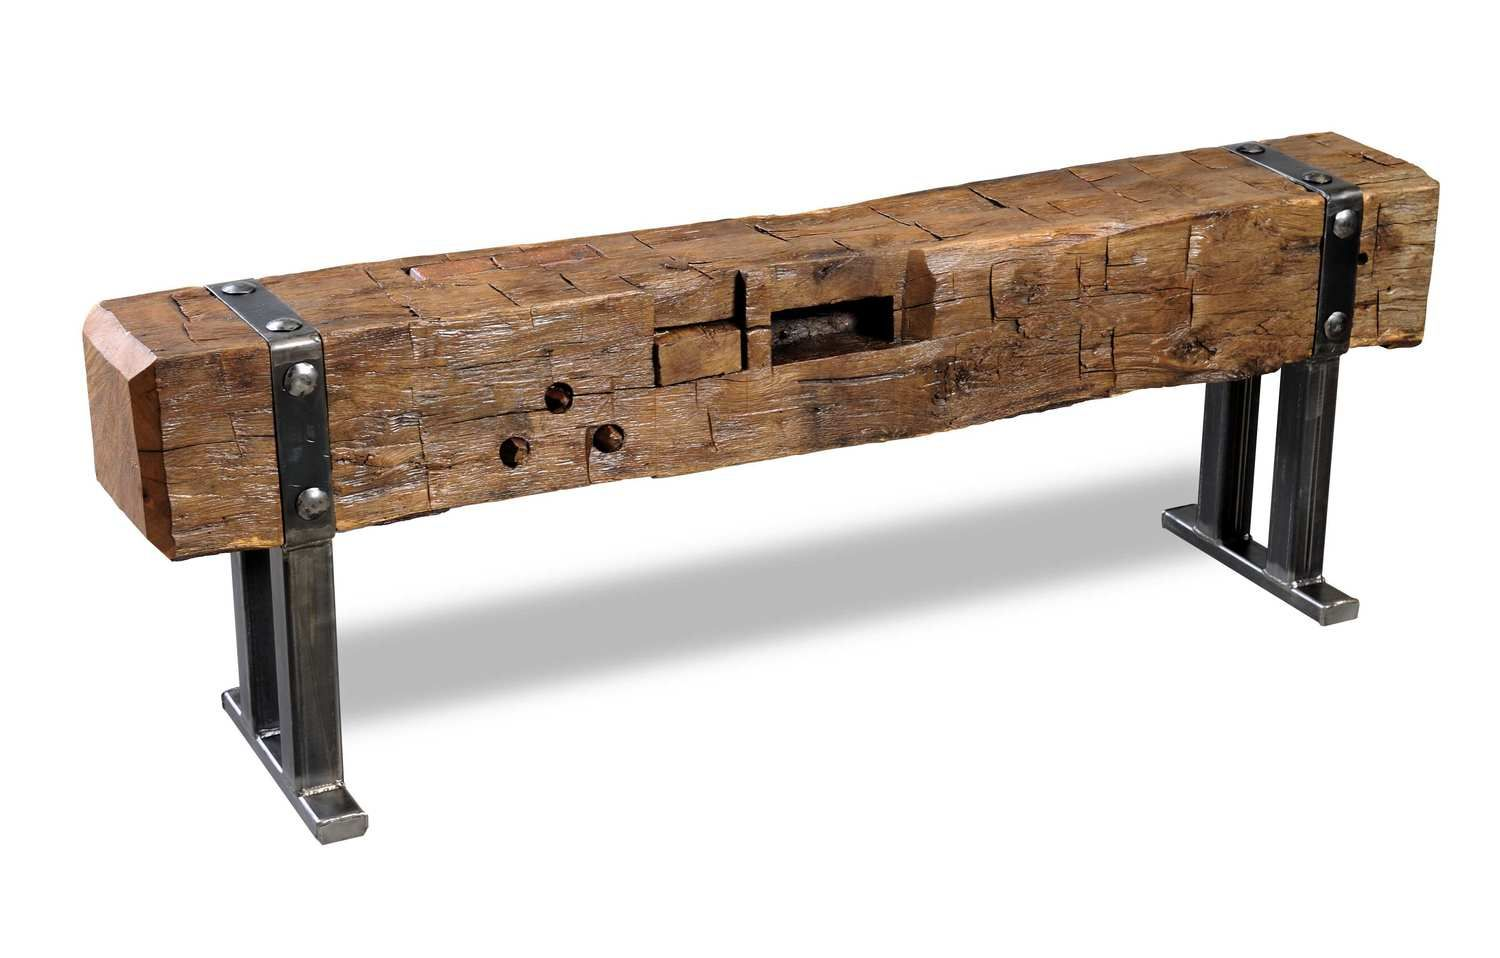 Hand Hewn Large Natural Beam Bench Hand Hewn Beam Benches Custom Designed With A 150 Year Old